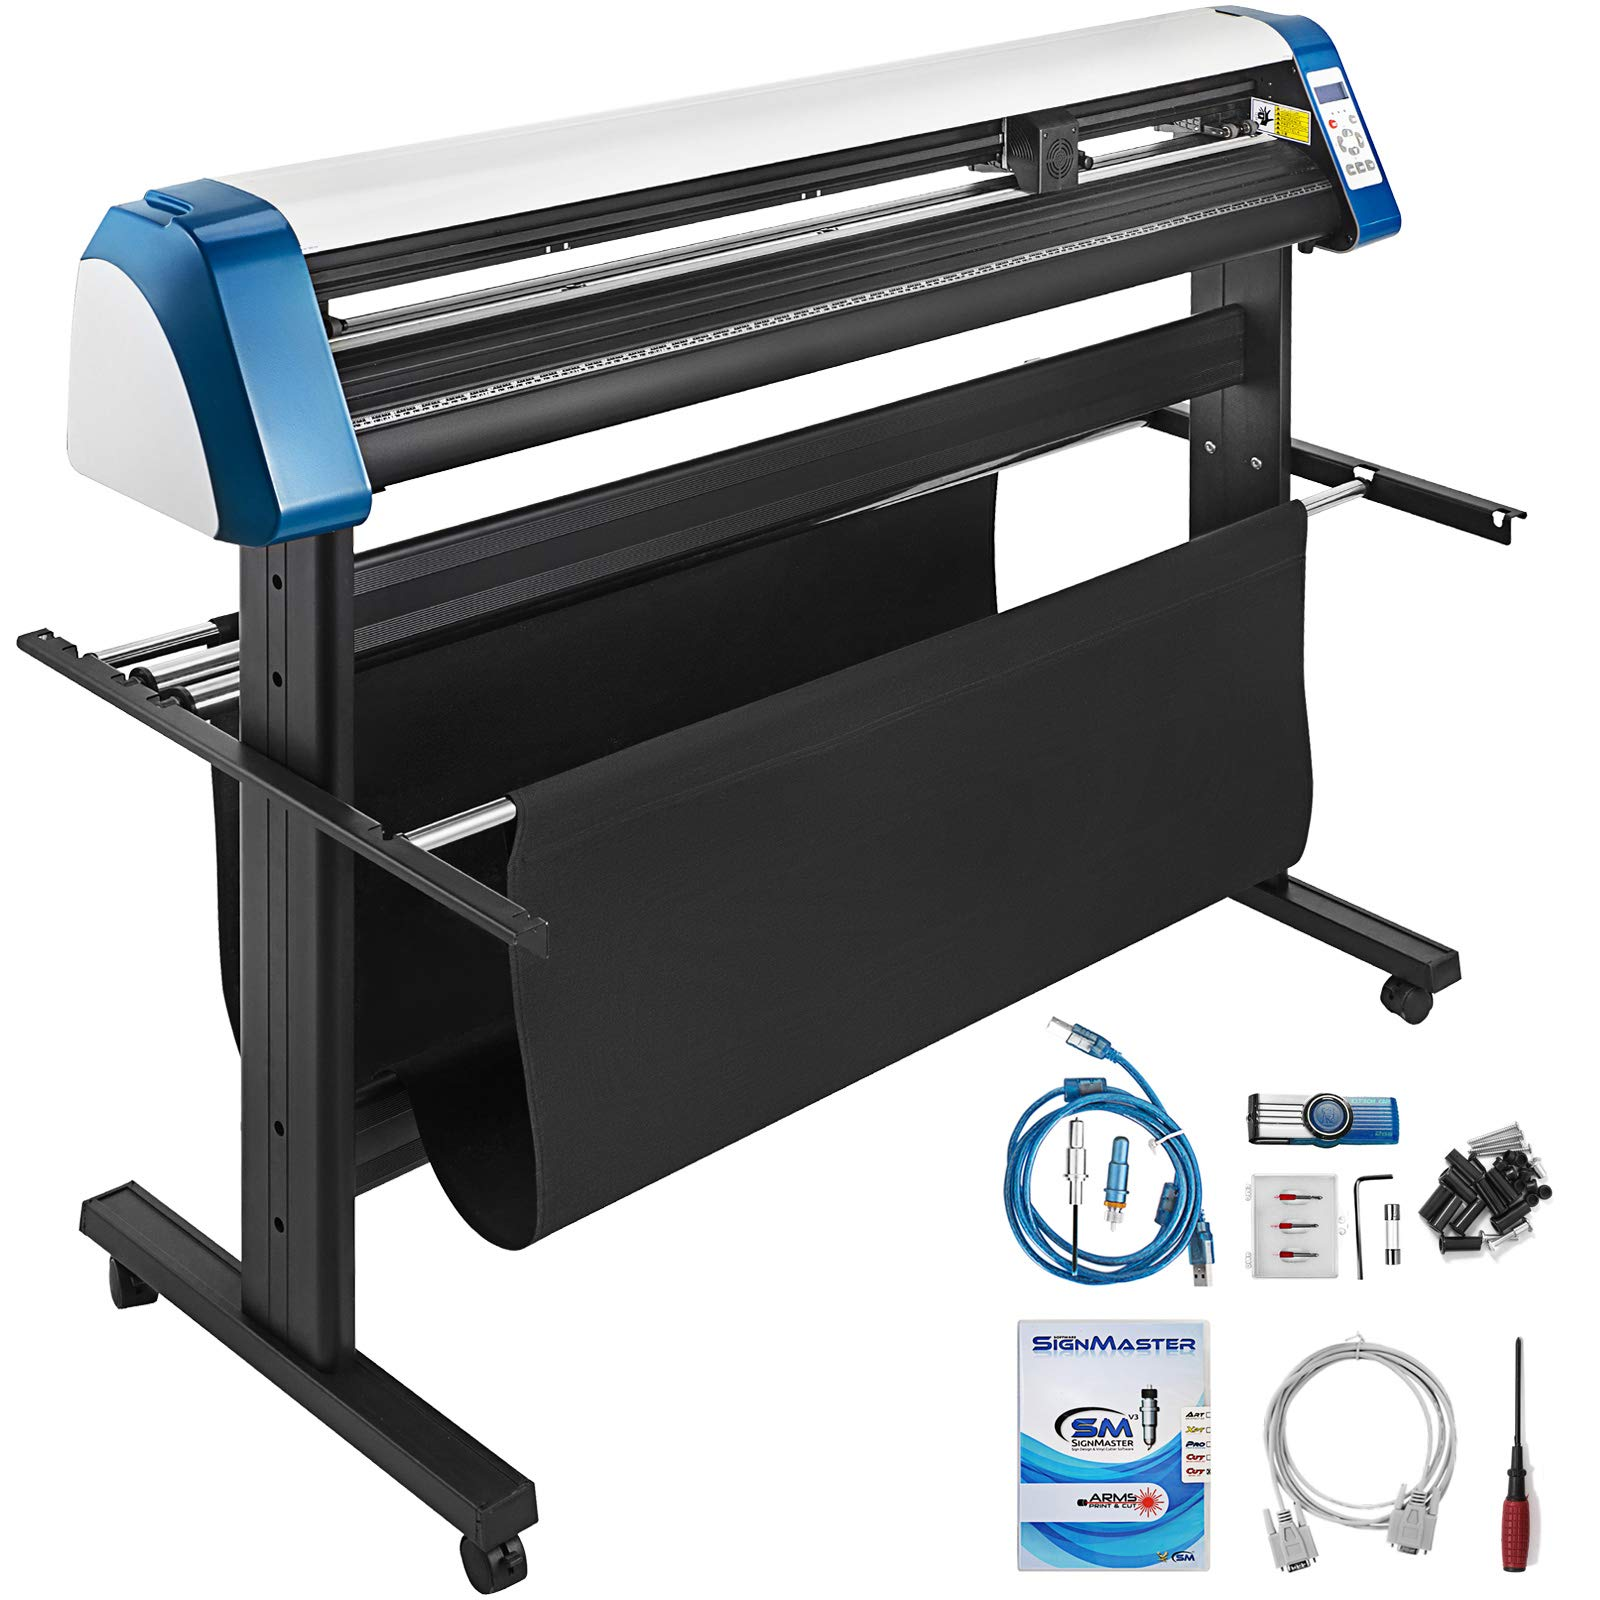 VEVOR Vinyl Cutter 53 Inch Vinyl Cutter Machine 1340mm Vinyl Printer Cutter Machine LED Fill Light Strip Vinyl Plotter Cutter Machine with Floor Stand & Signmaster Software by VEVOR